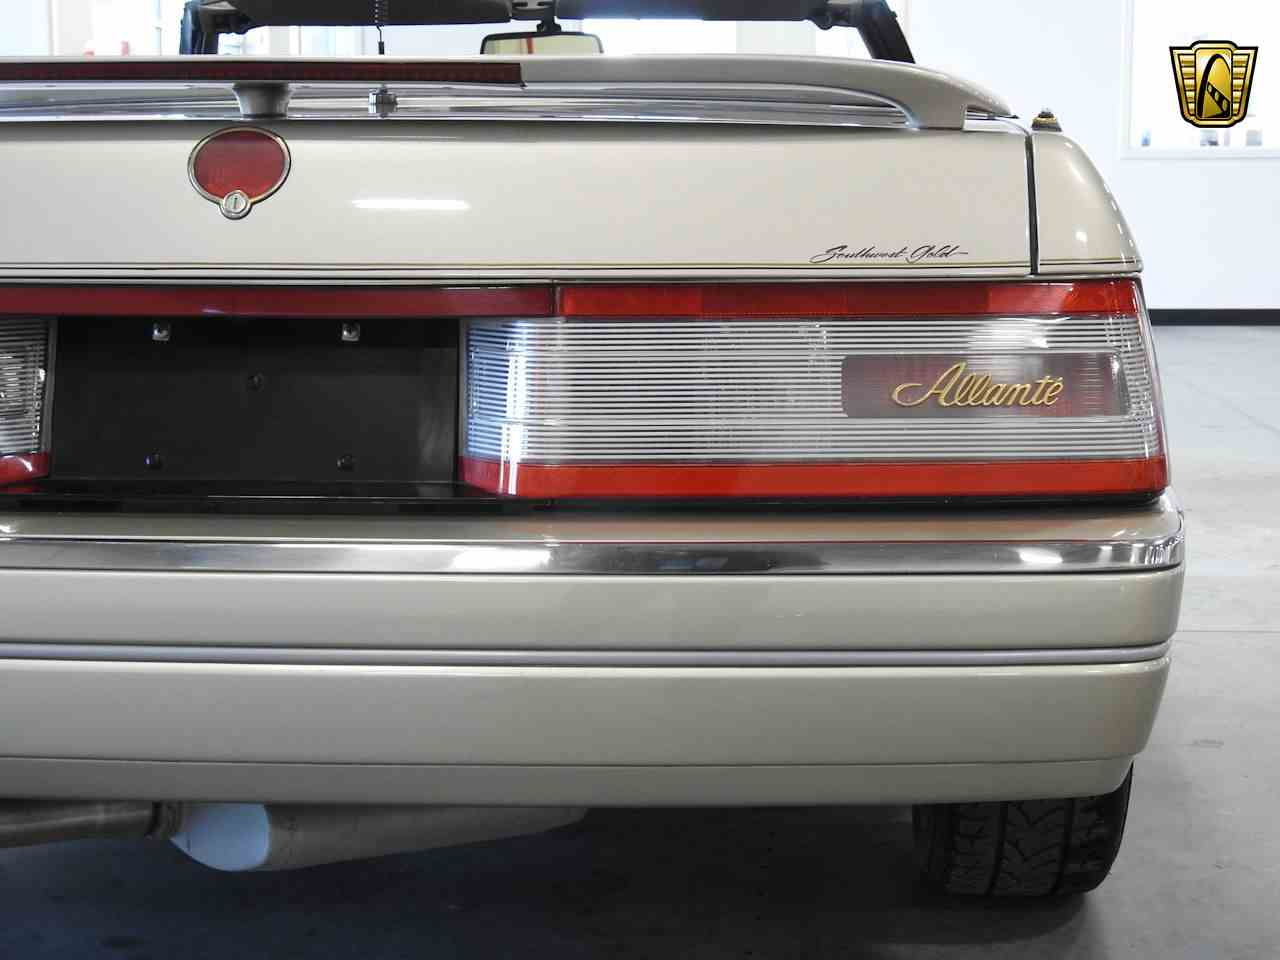 Large Picture of '93 Cadillac Allante located in Kenosha Wisconsin - $8,995.00 - MDHG